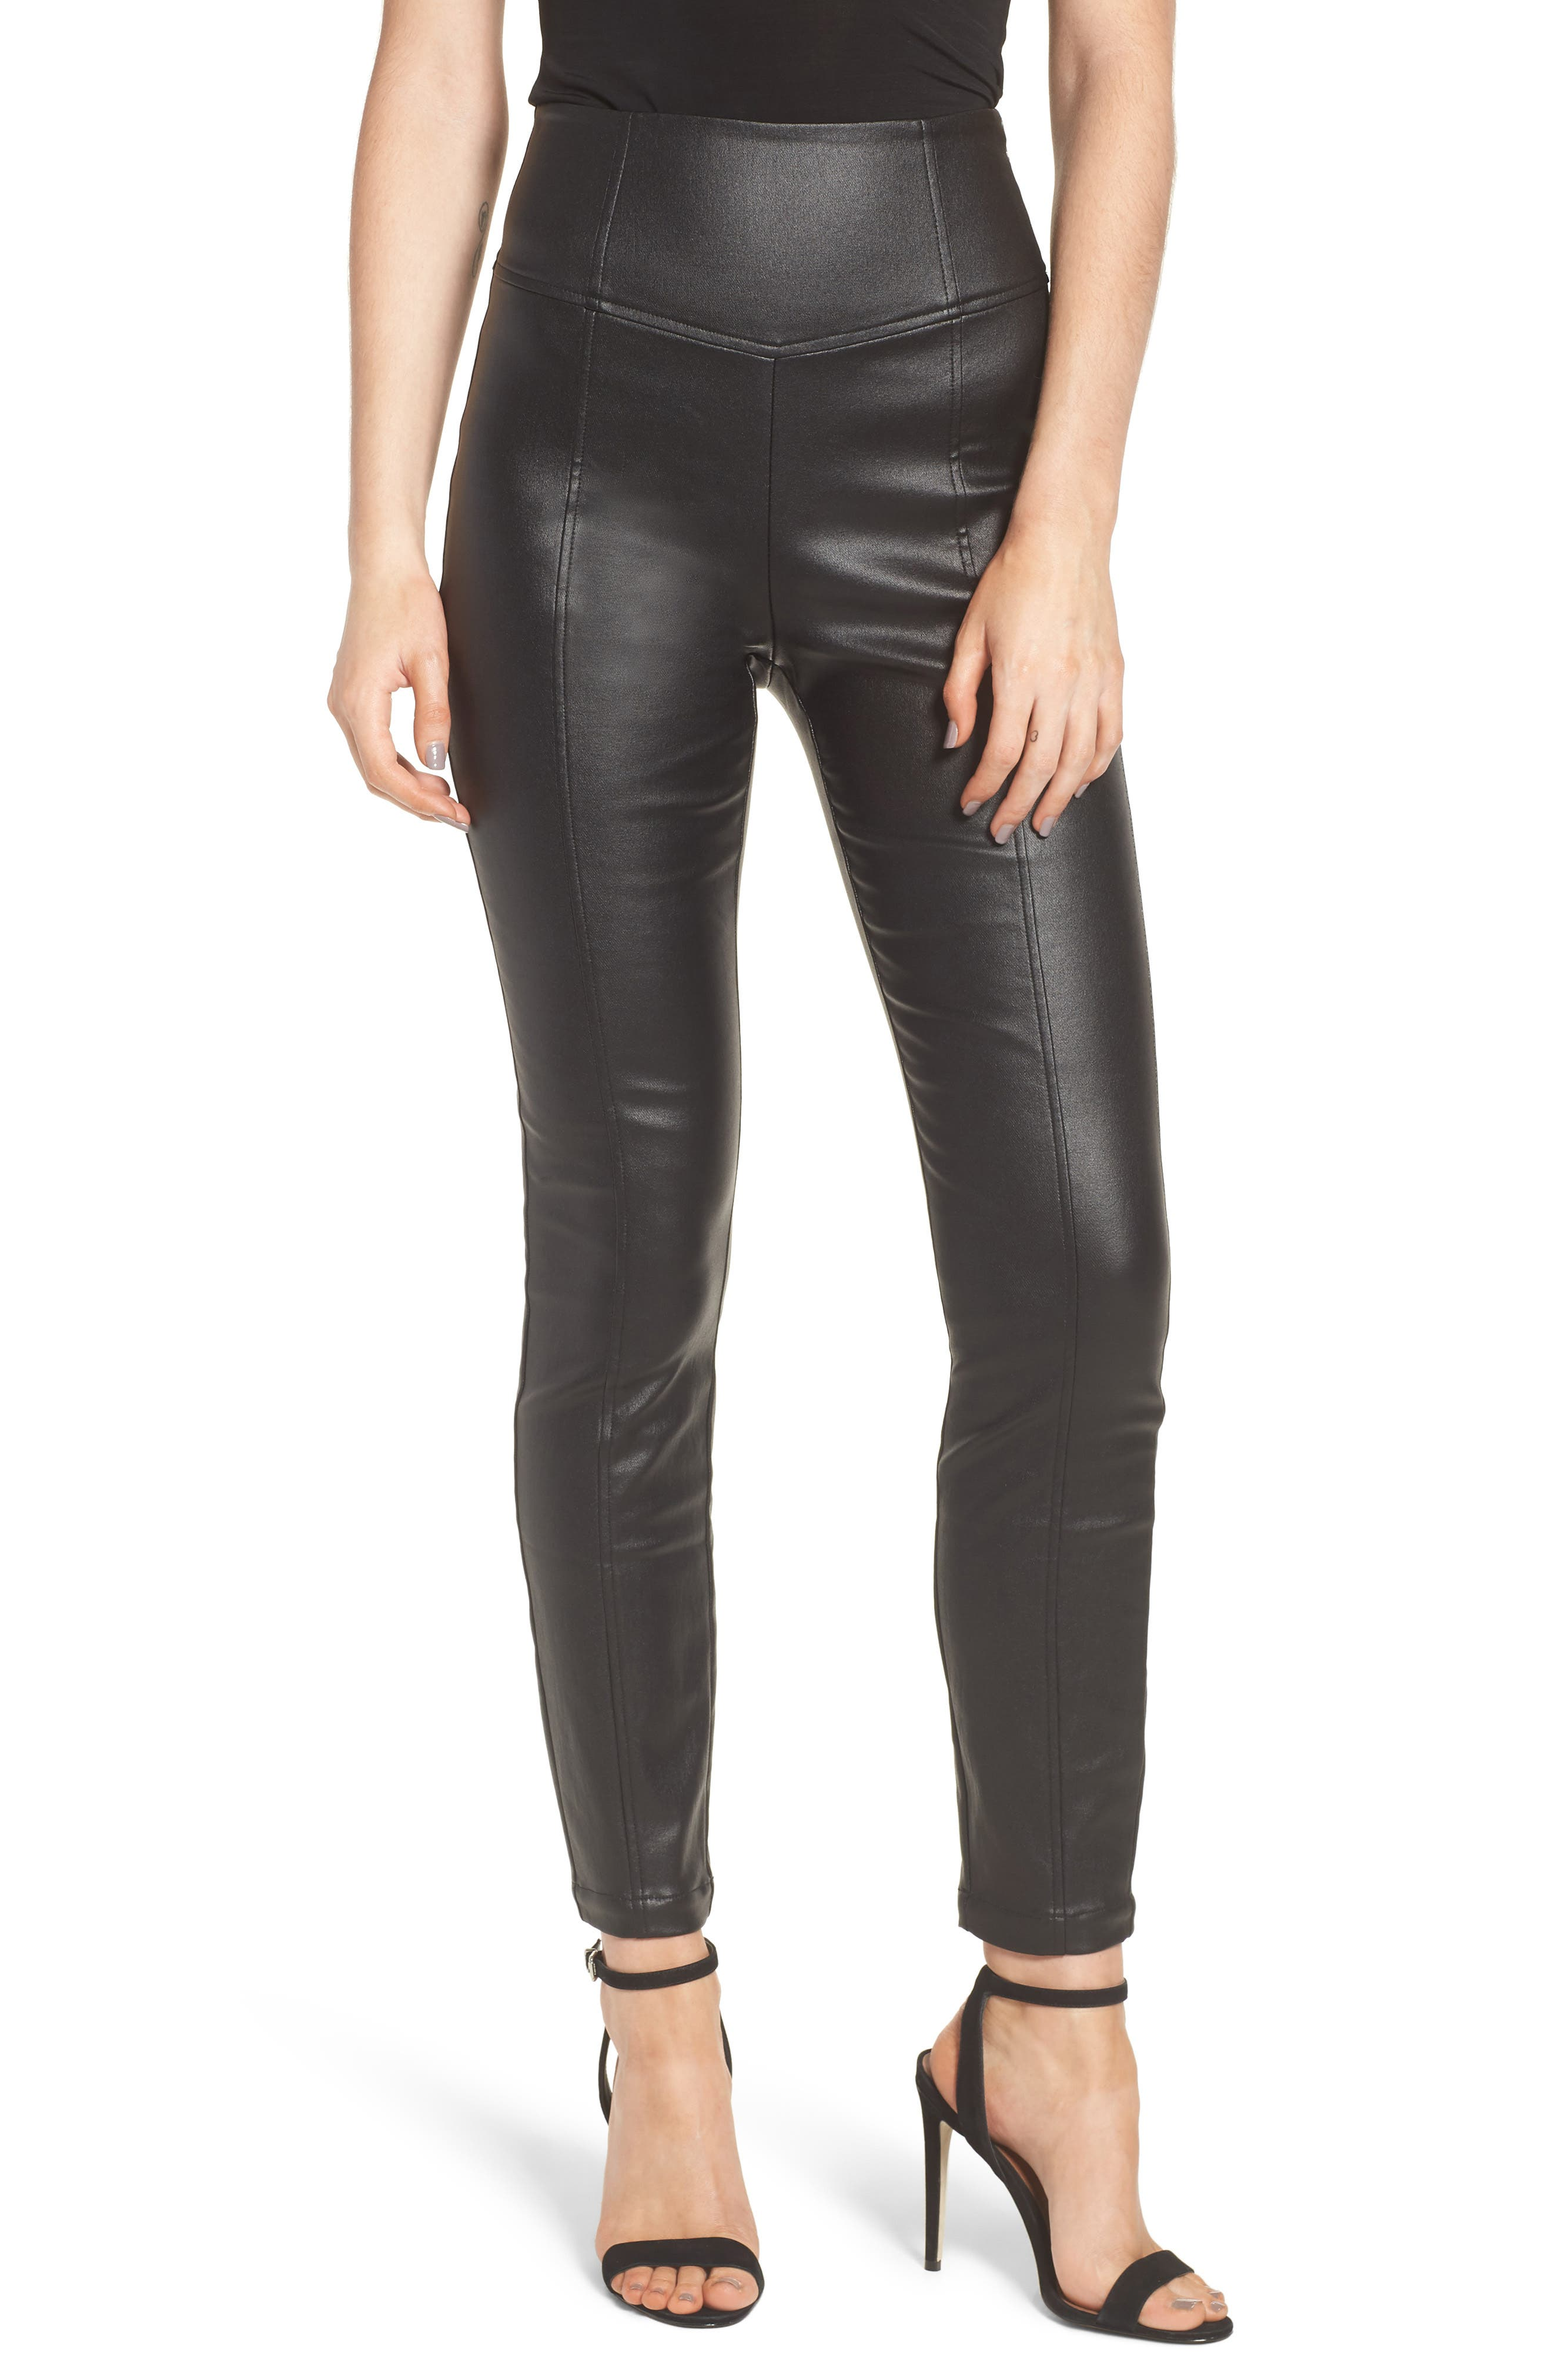 LOST INK High Waist Coated Leggings